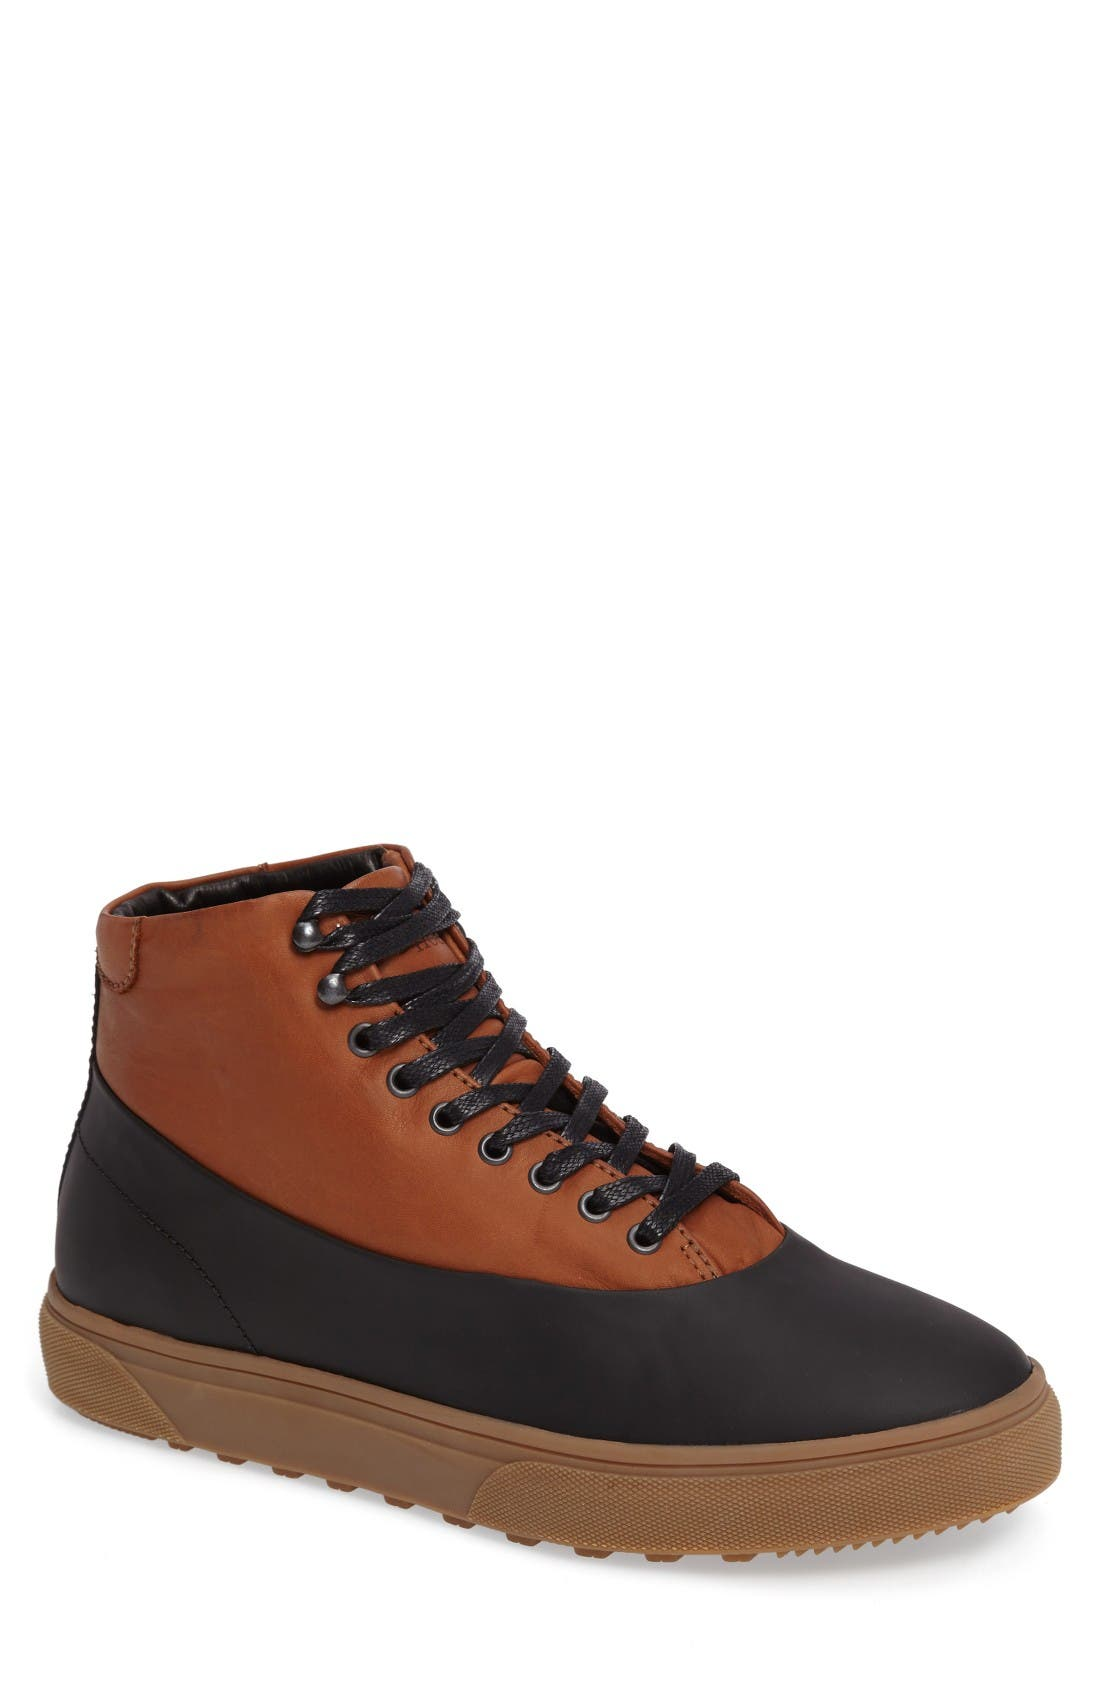 Main Image - Hood Rubber Wayland High Top Sneaker (Men)